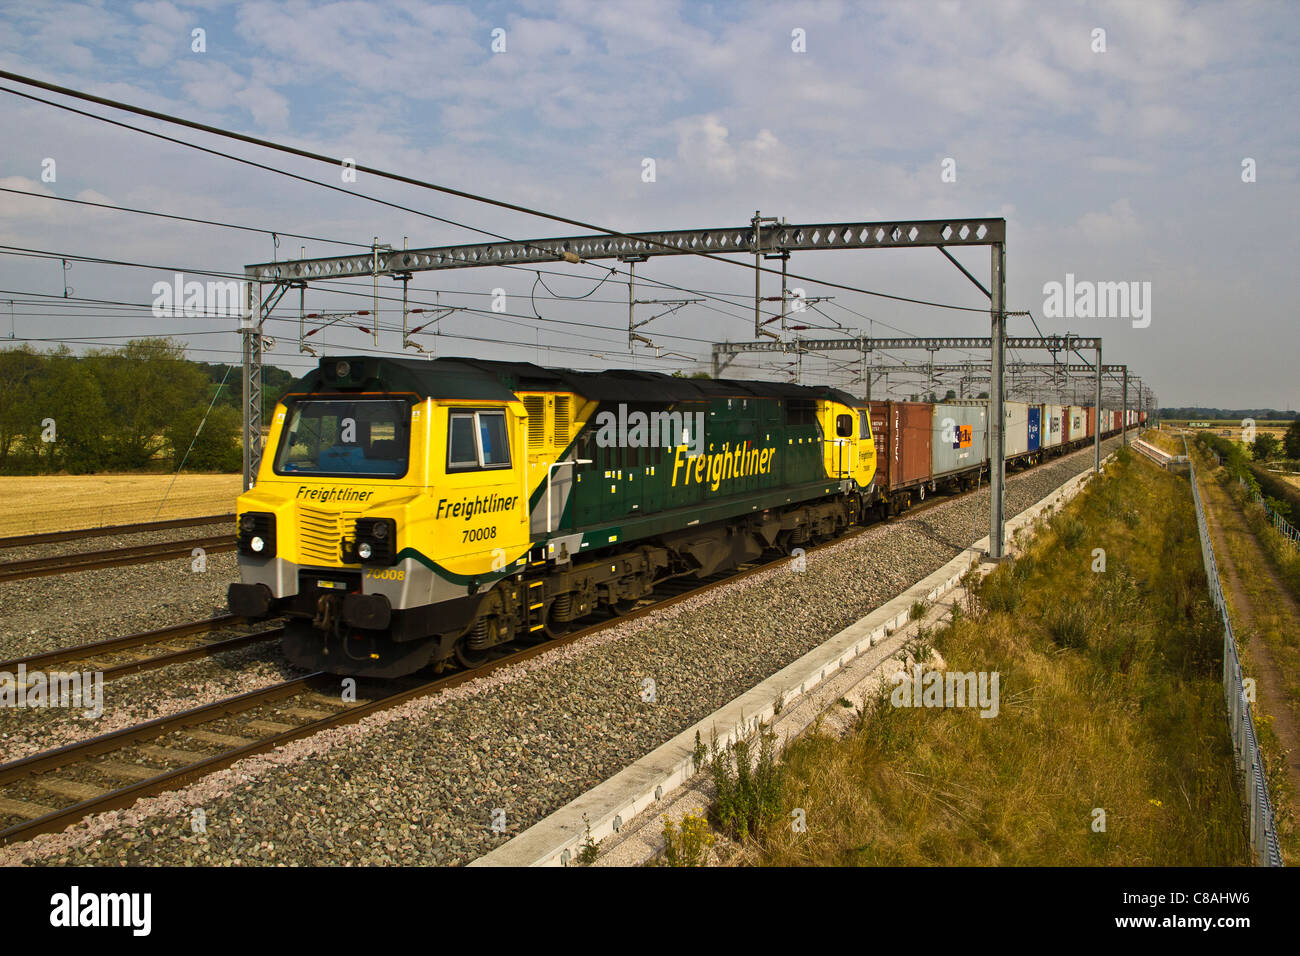 Freightliner intermodal class 70 70008 passes Comberford, Tamworth, Staffordshire with a Manchester to Felixstowe - Stock Image